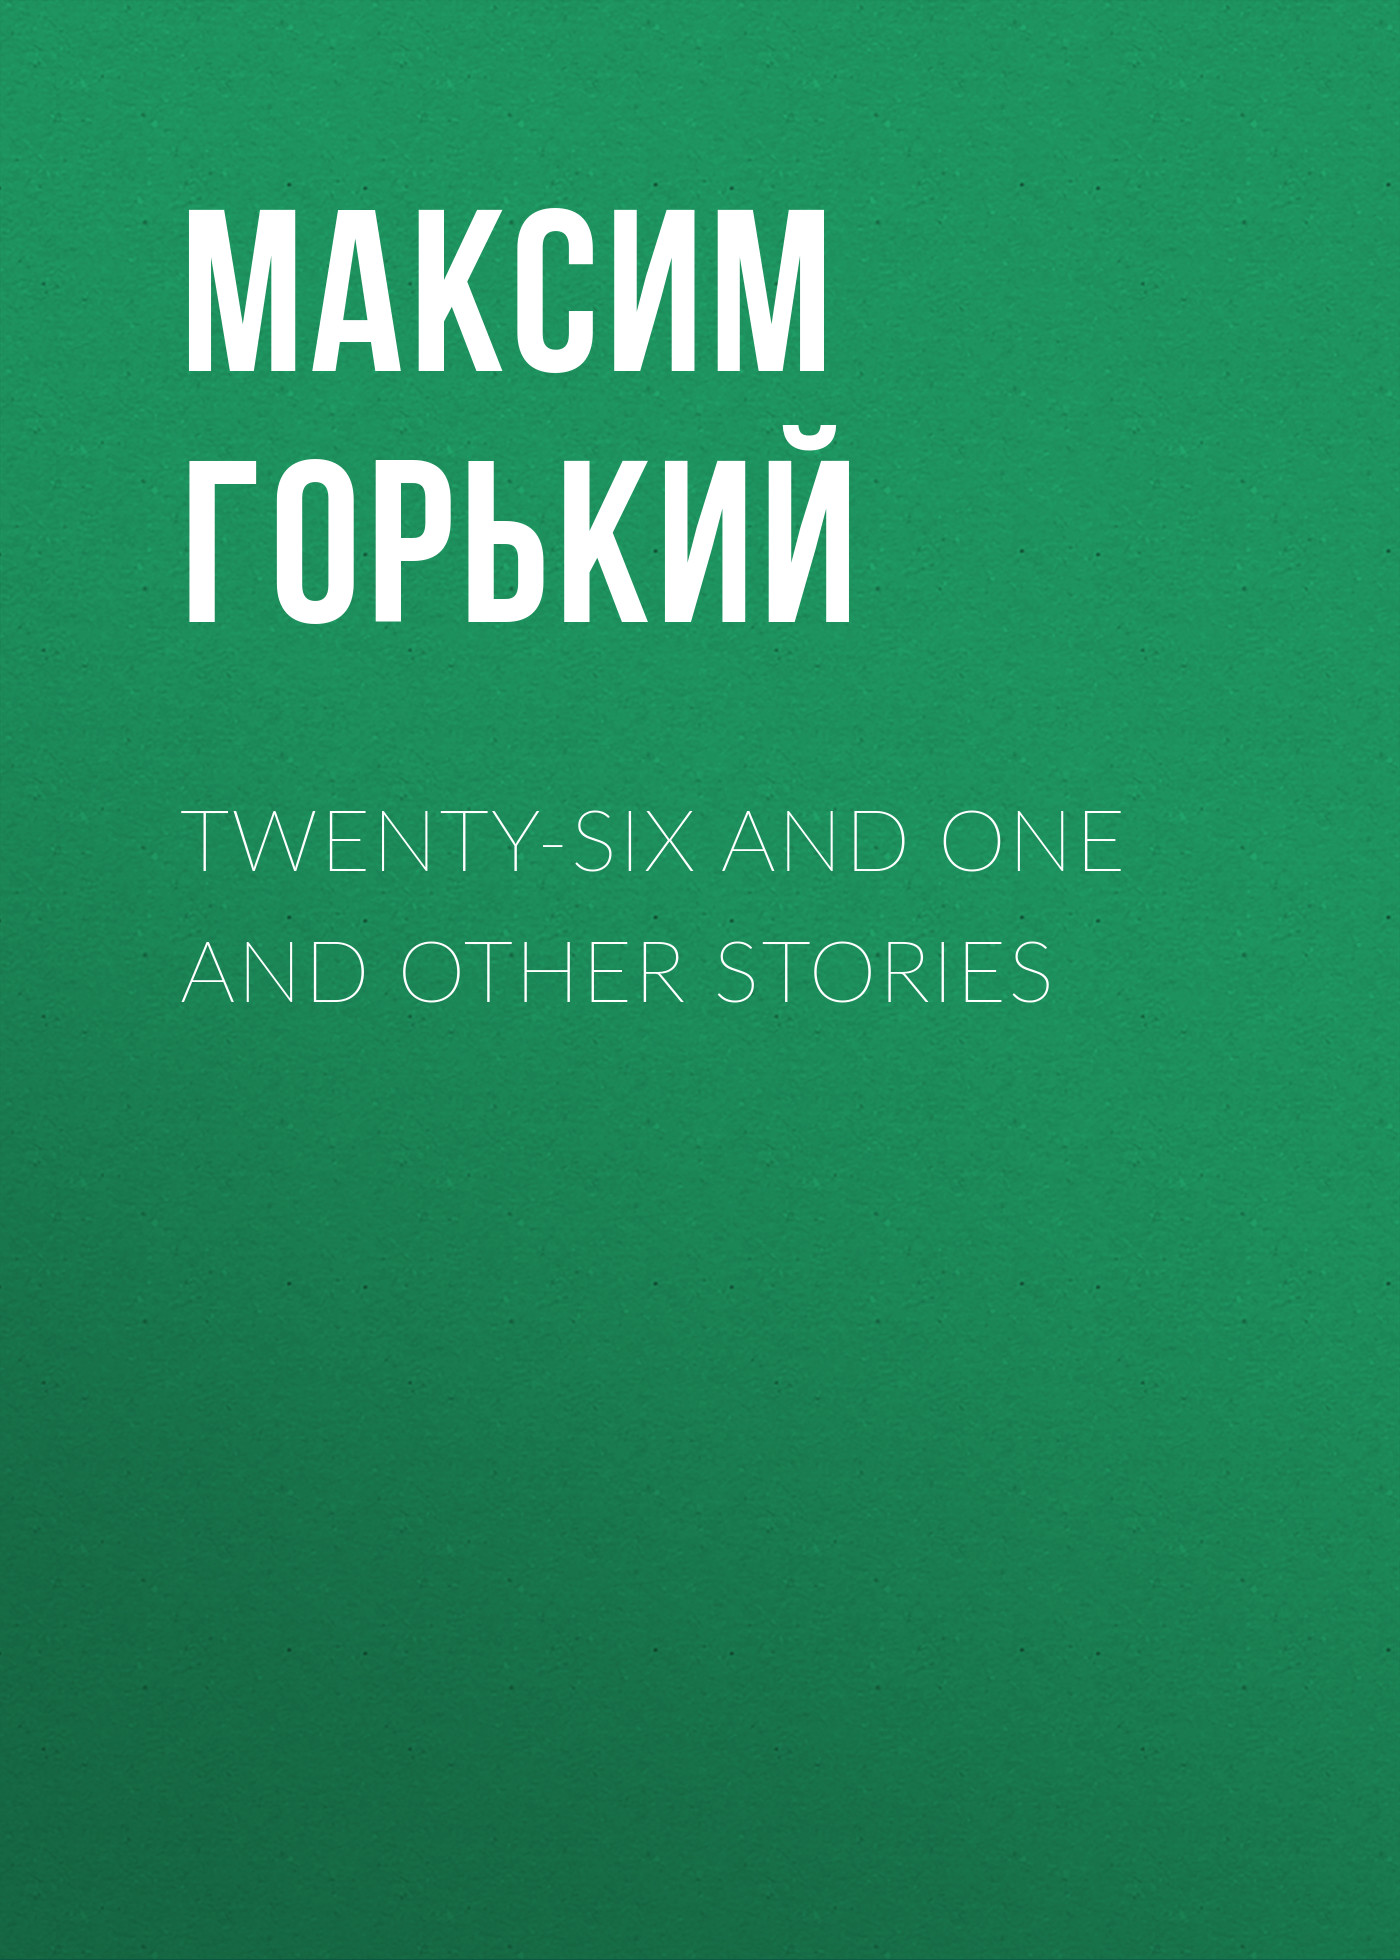 Максим Горький Twenty-six and One and Other Stories jenny dooley virginia evans hello happy rhymes nursery rhymes and songs